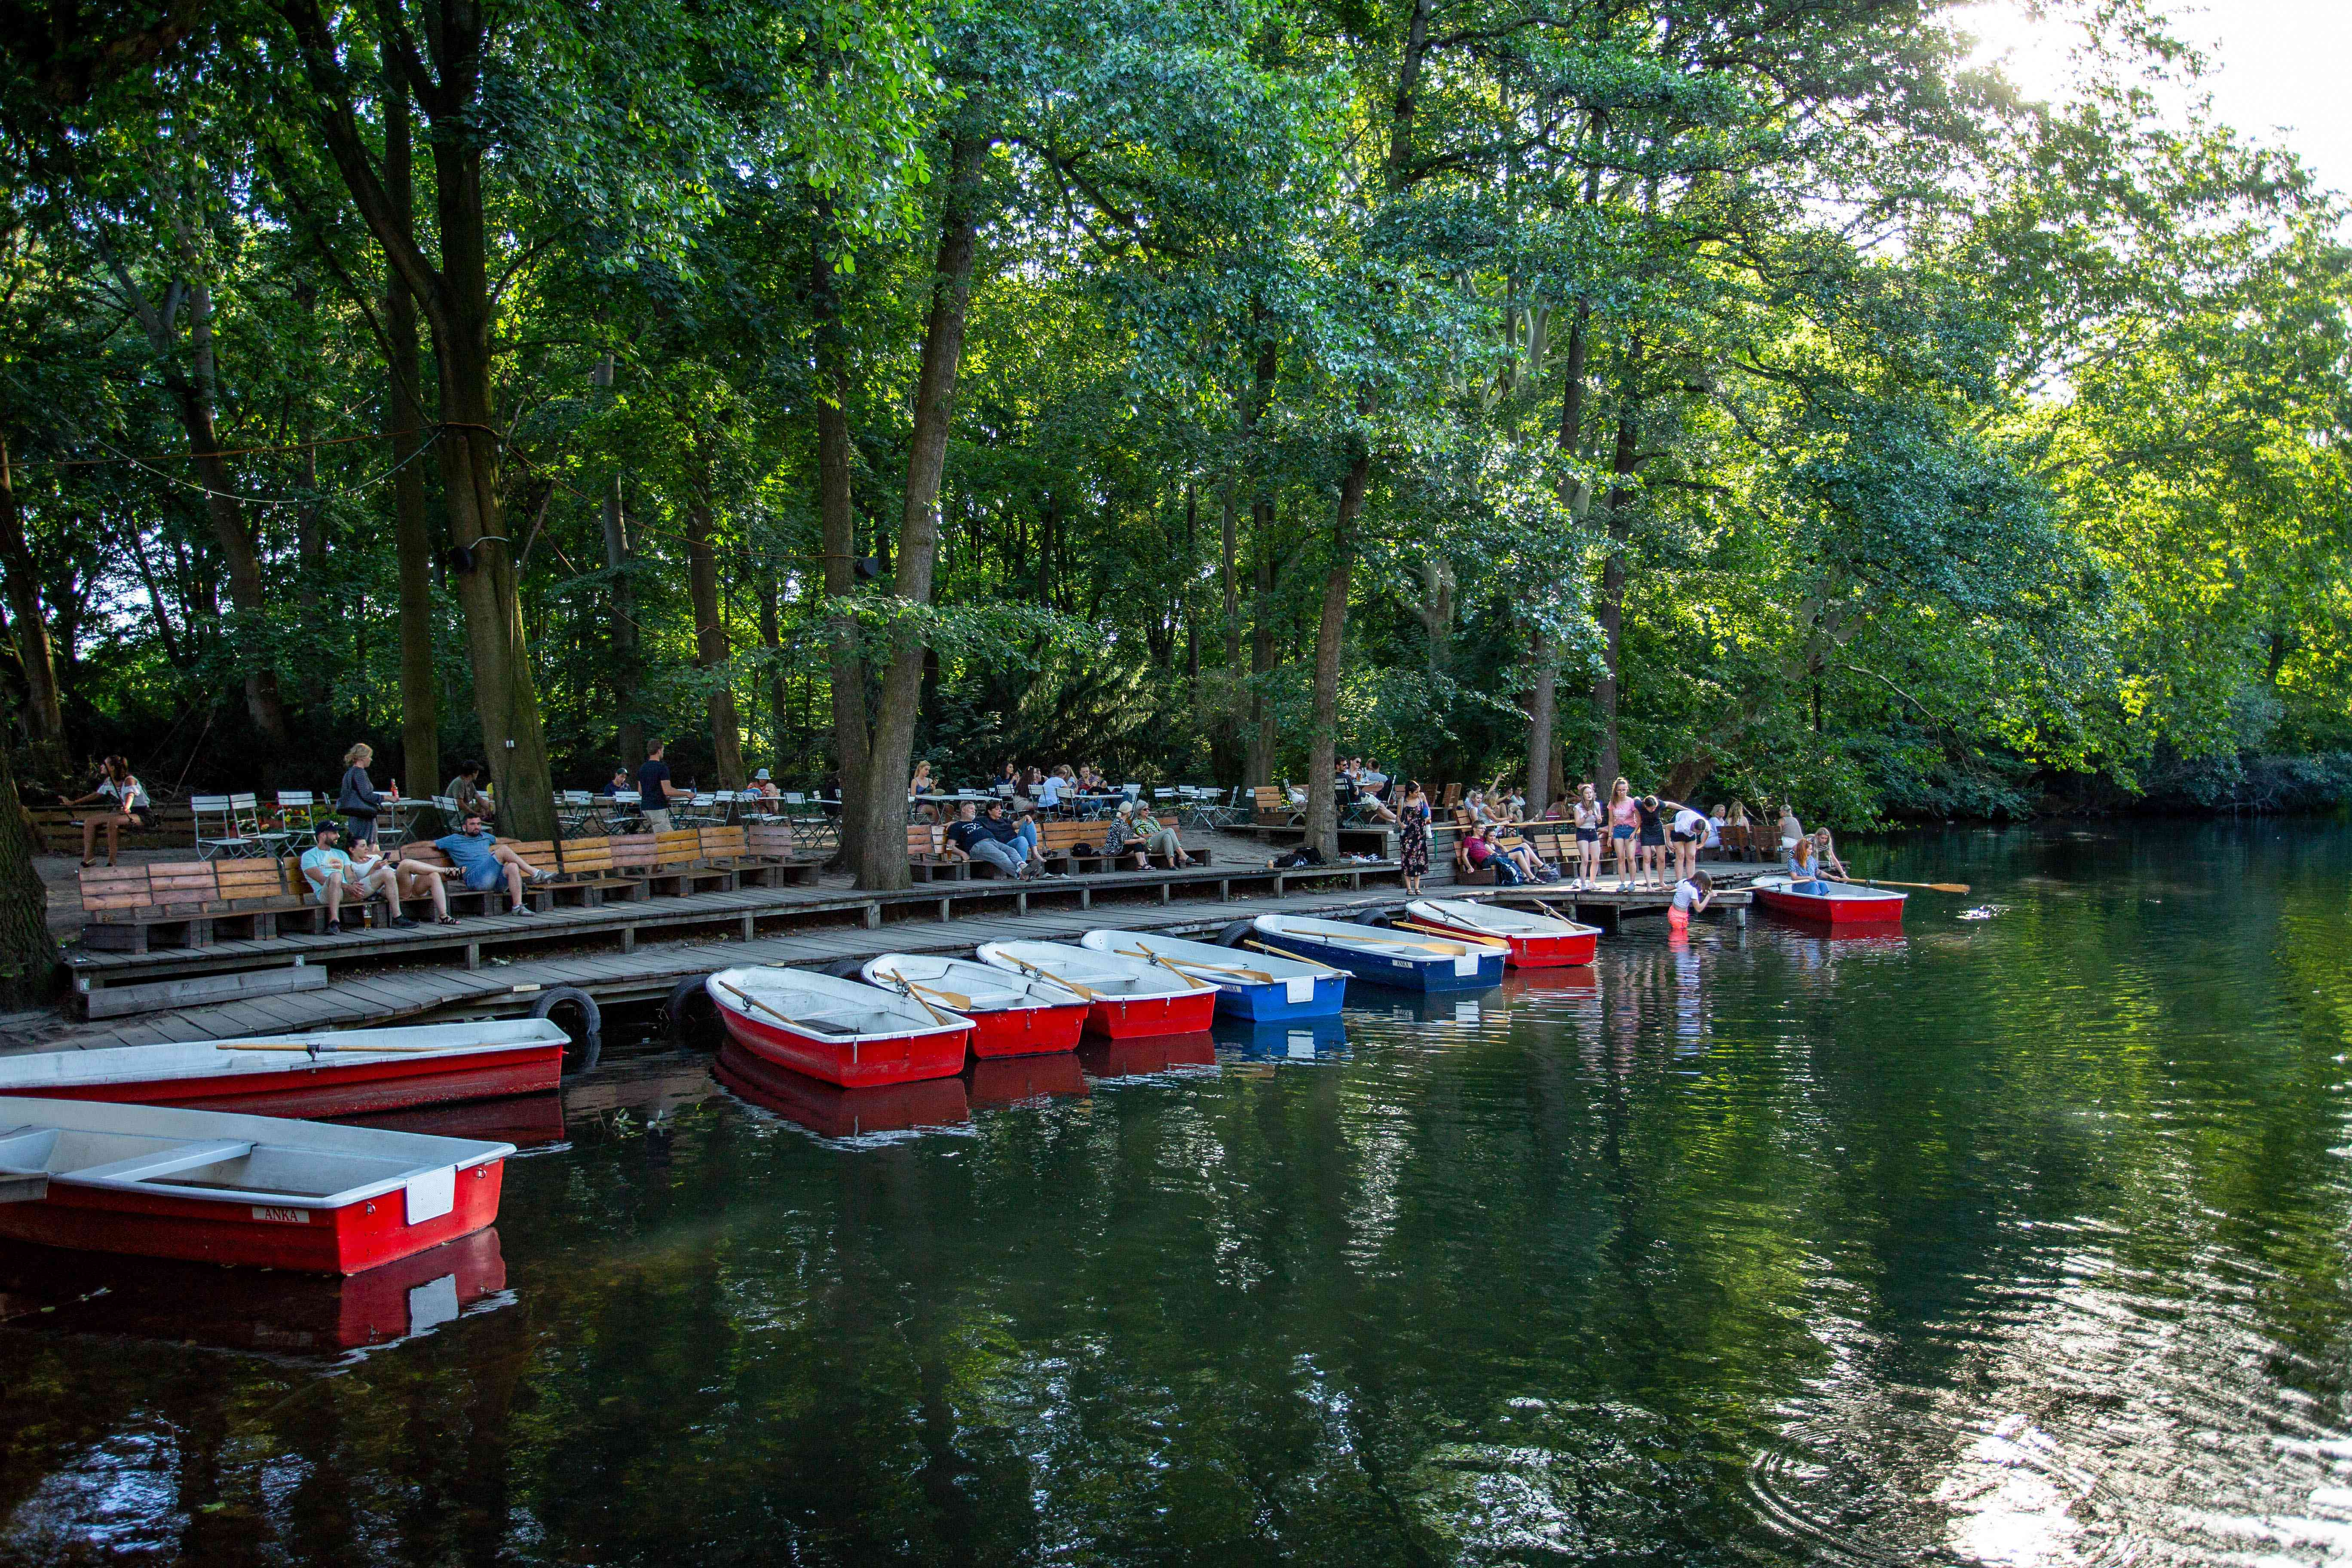 Boats docked by benches at Cafe Am Neuen See